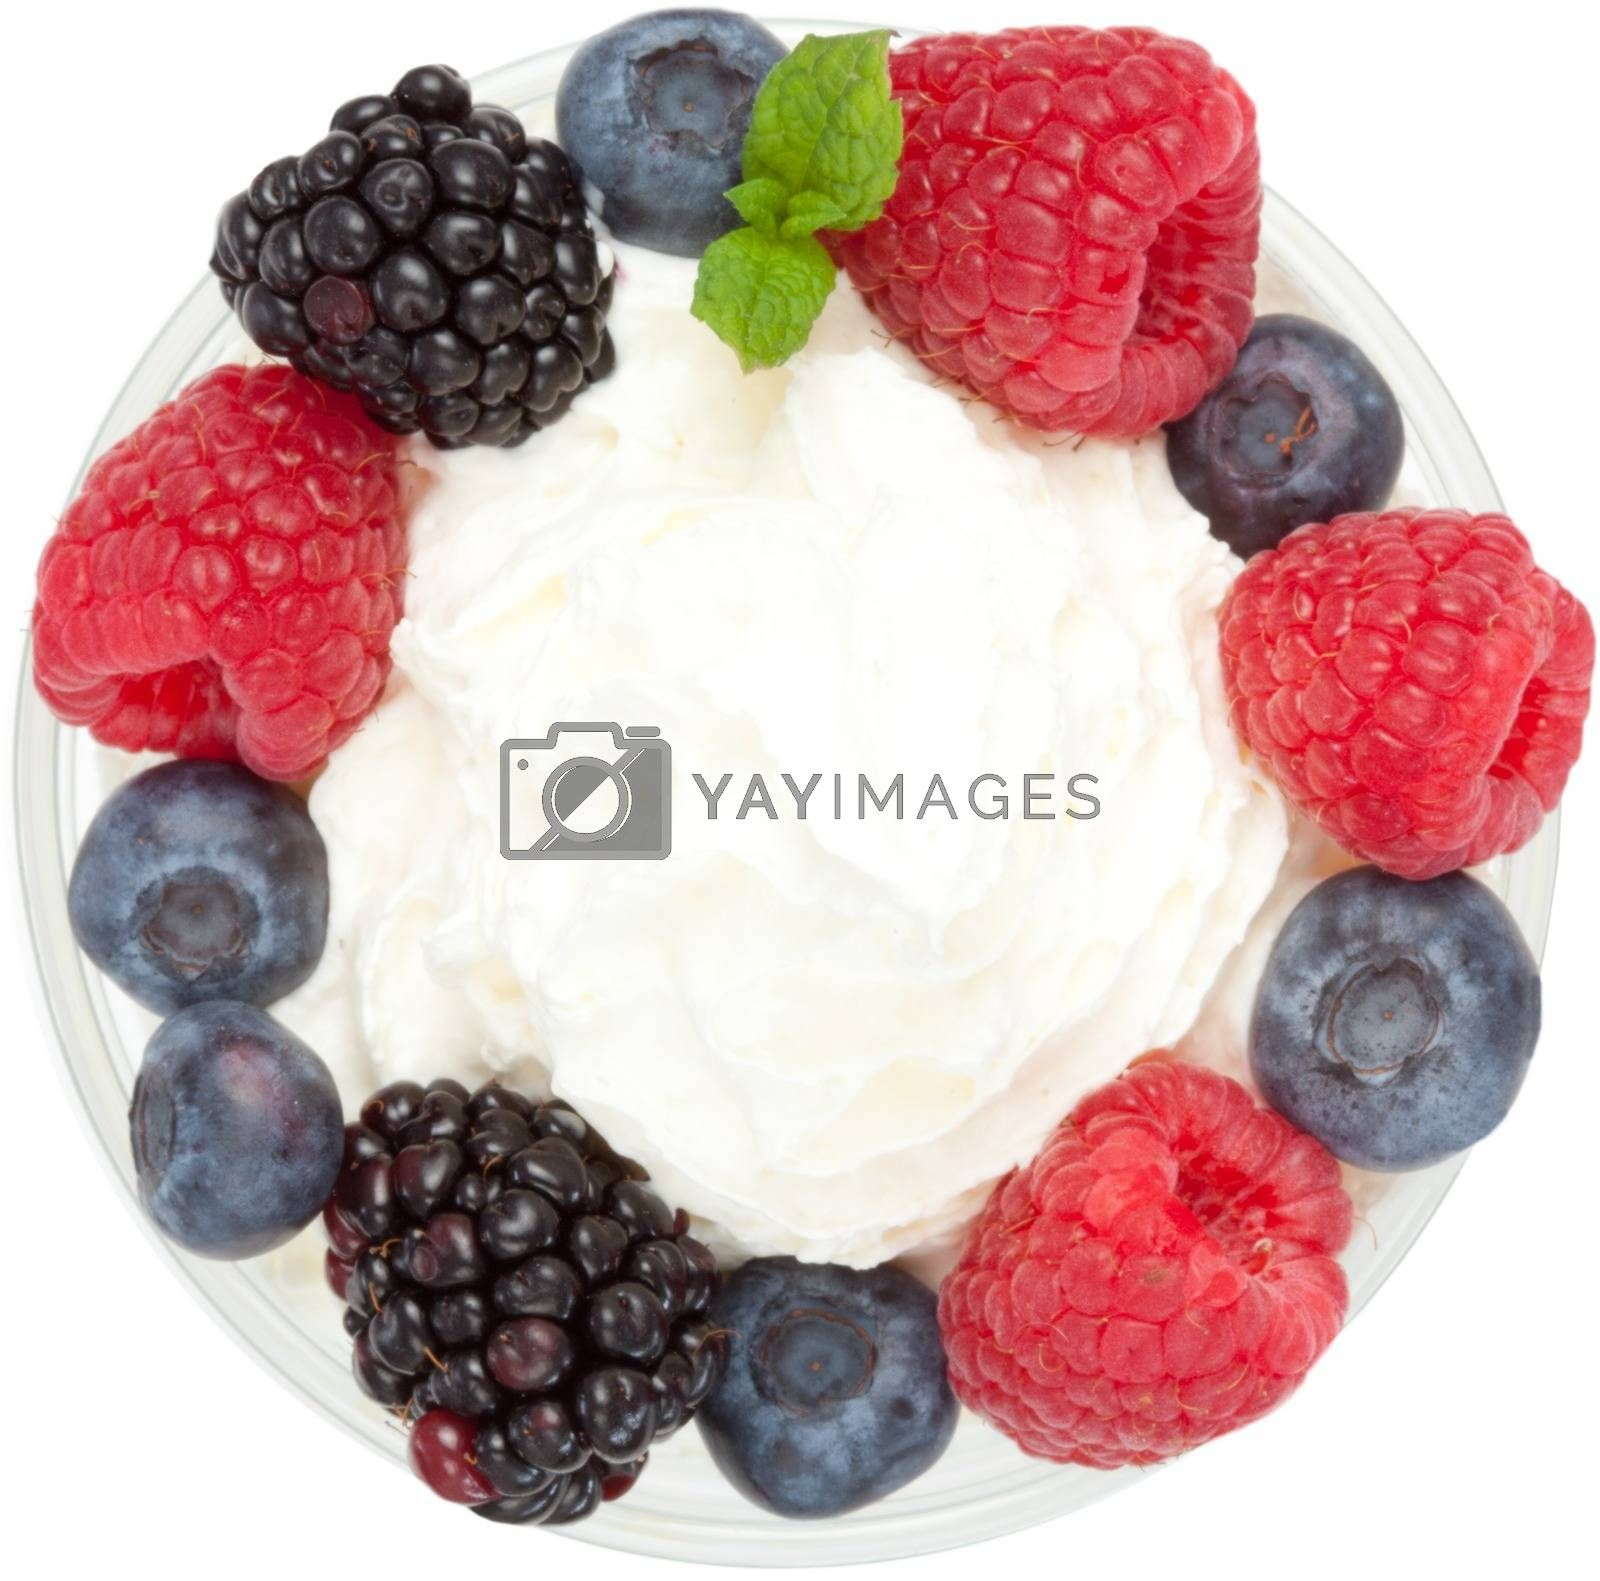 Royalty free image of Meringue dessert with fruit and cream by Wavebreakmedia